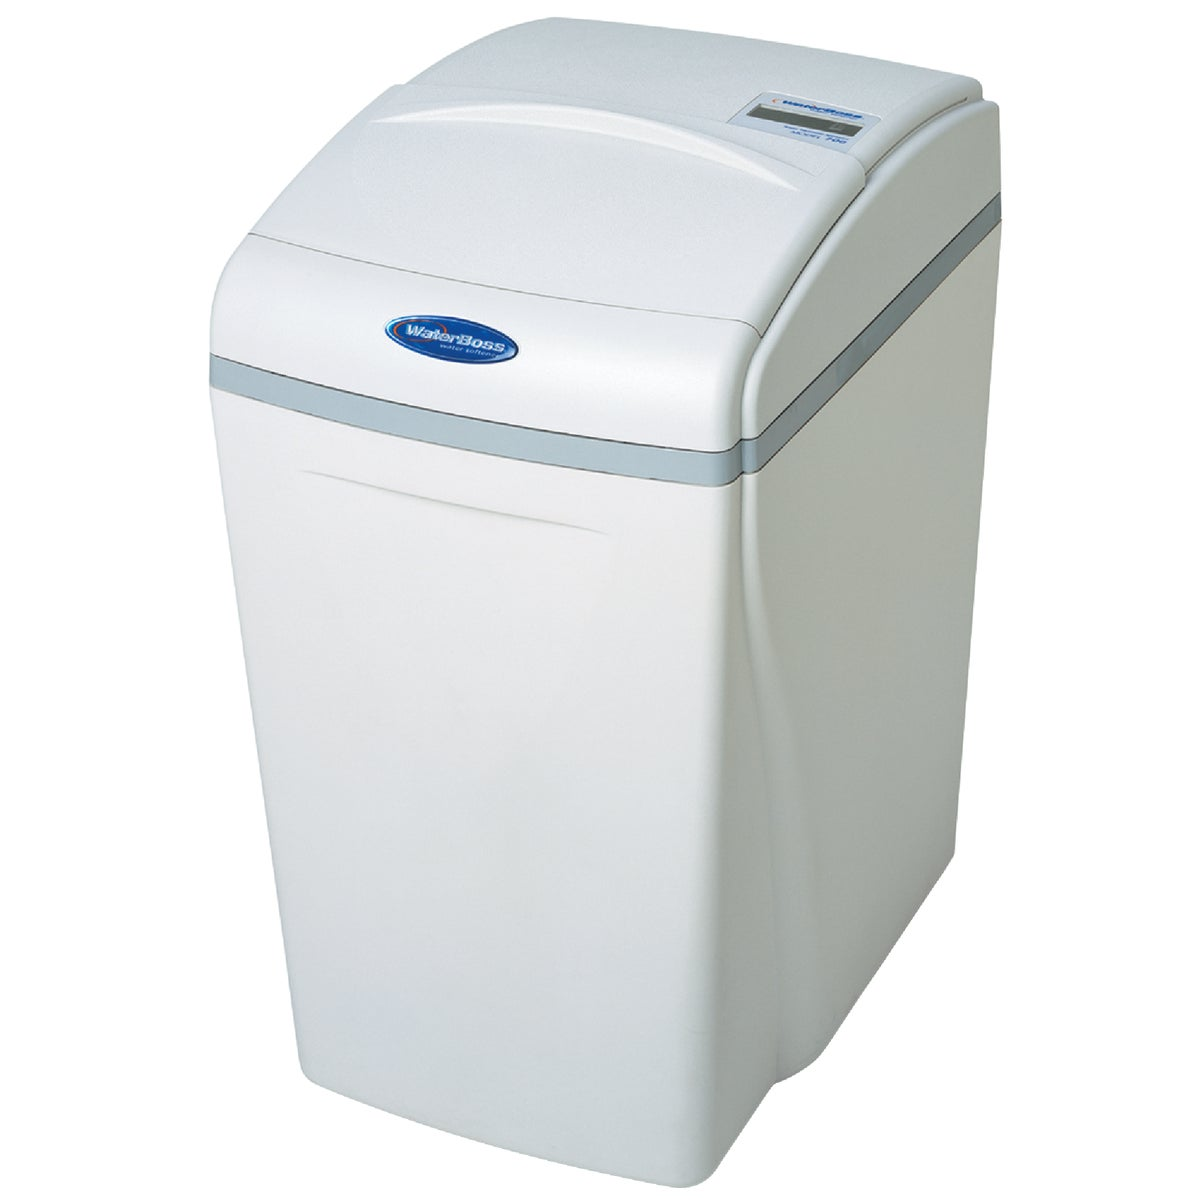 WATERBOSS WATER SOFTENER - 700 by Water Boss